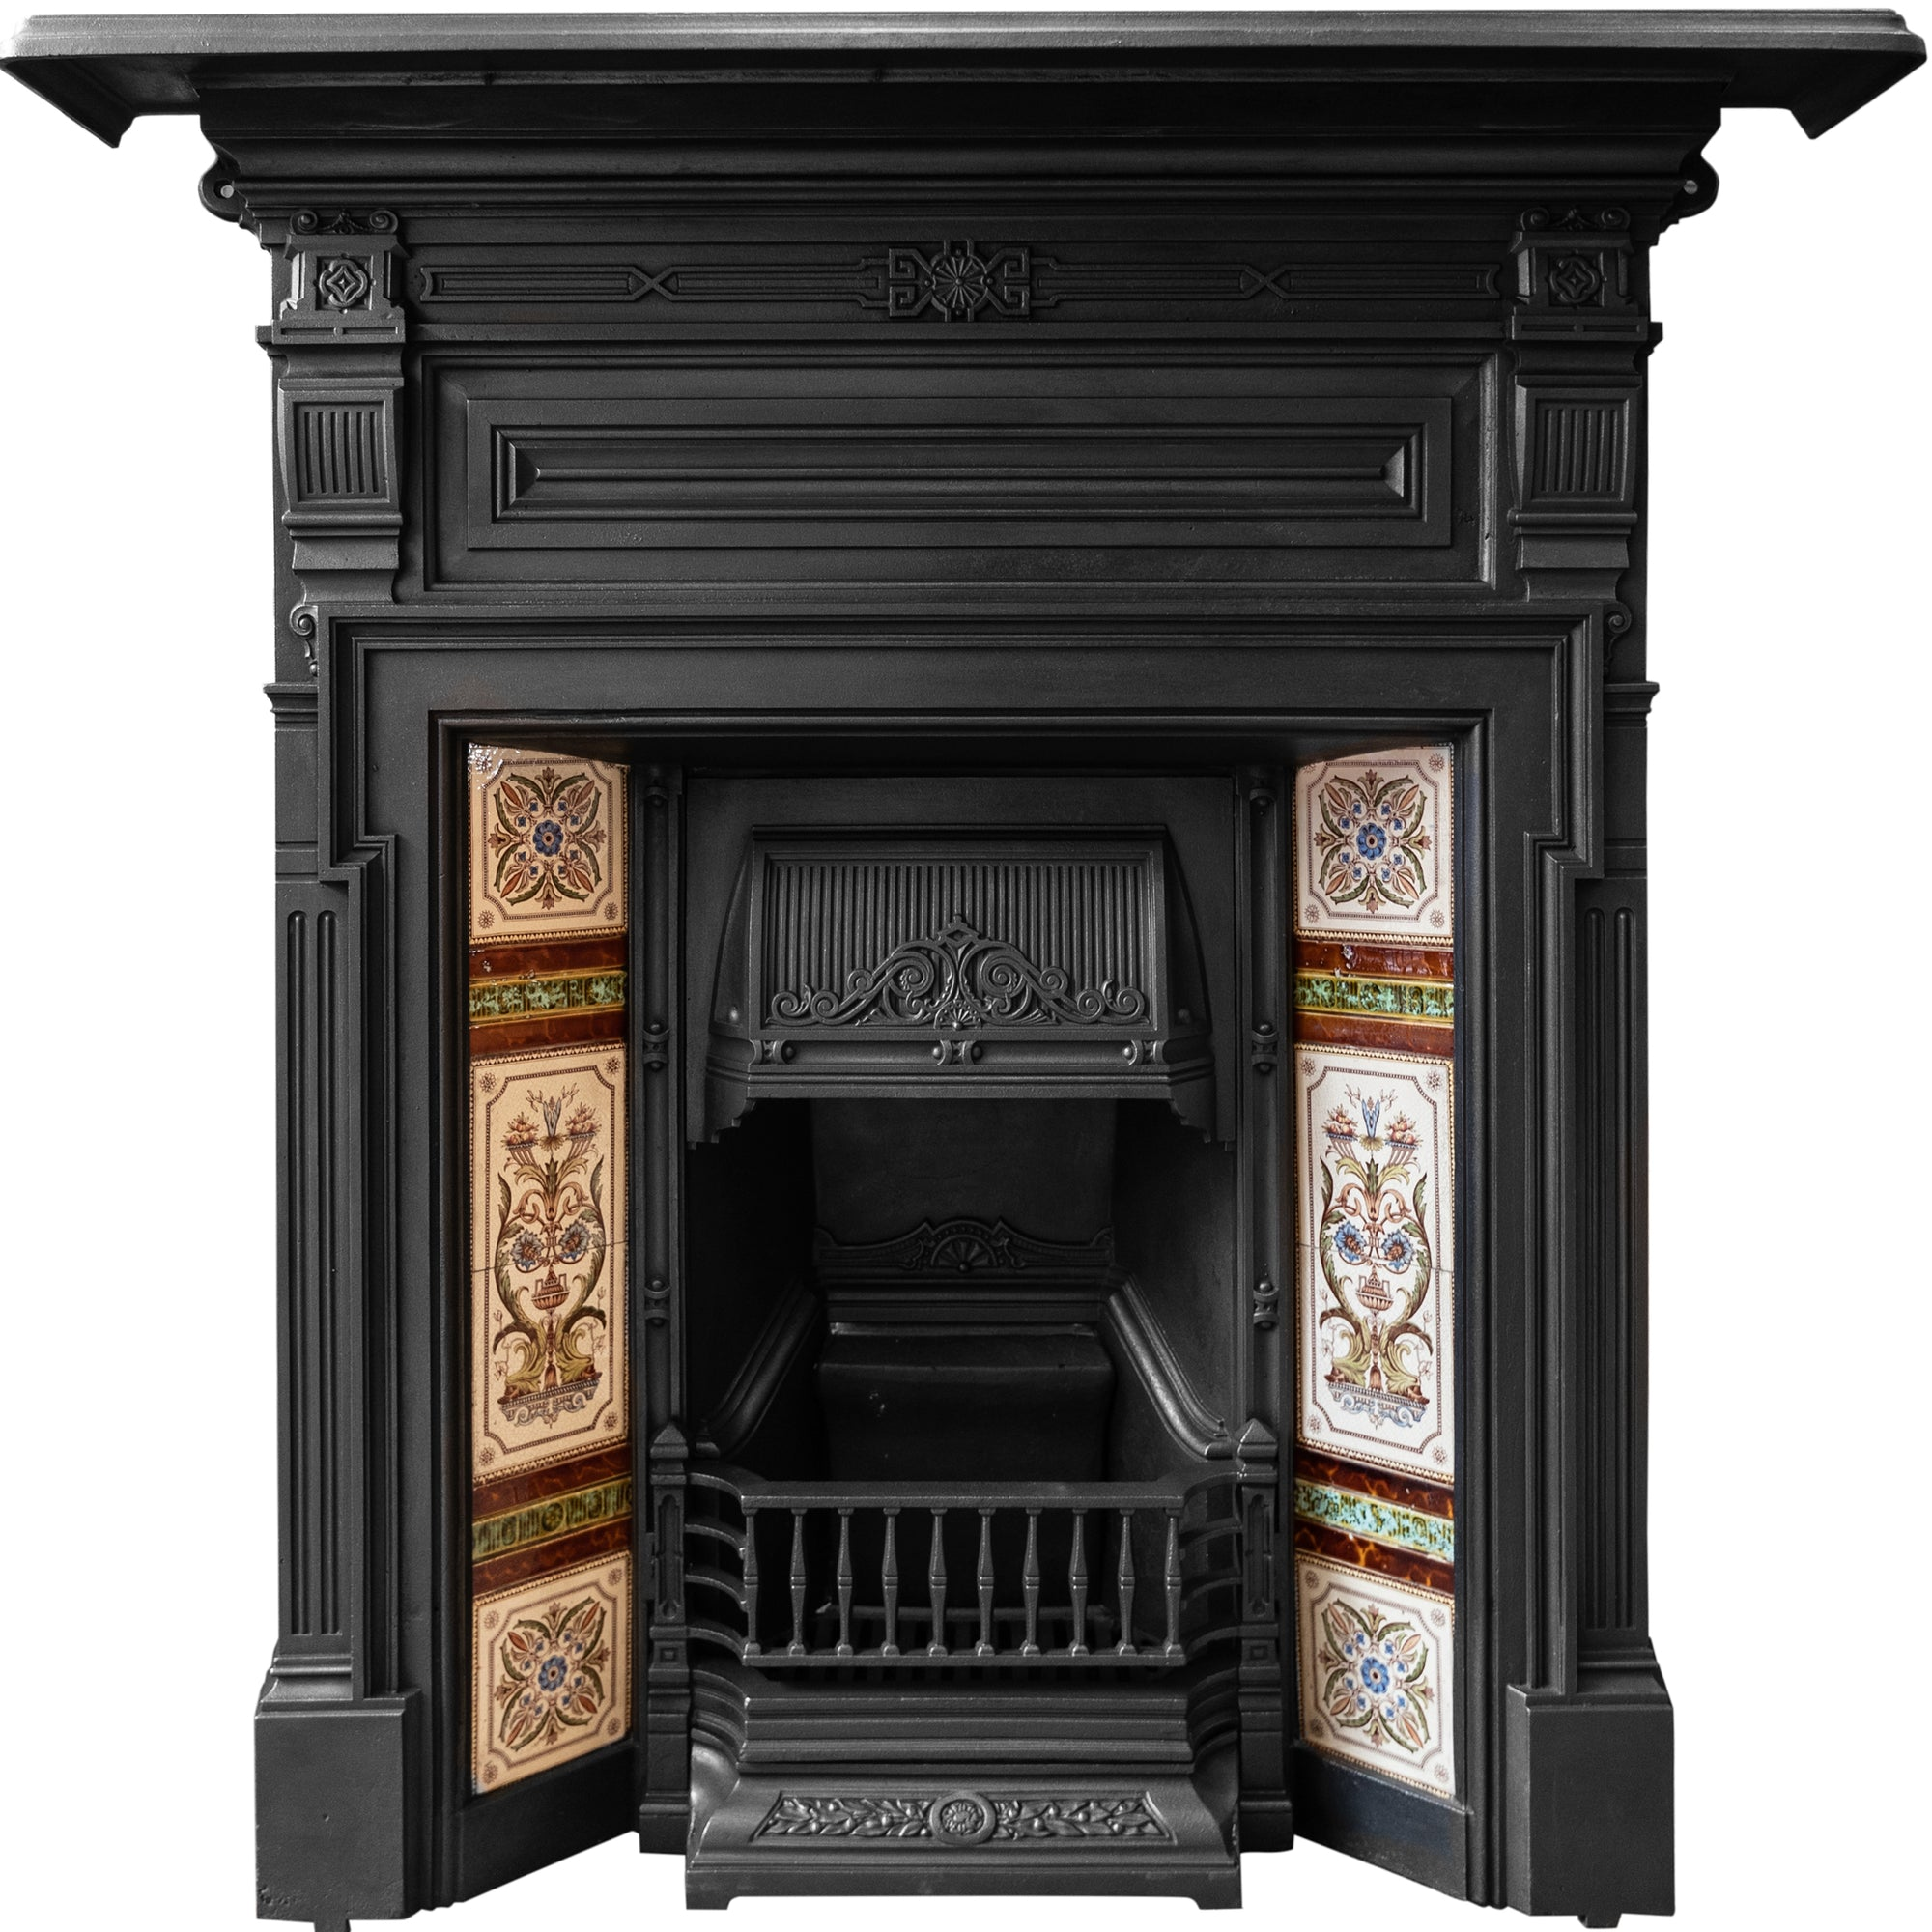 Antique Edwardian Cast Iron Tiled Combination Fireplace - The Architectural Forum